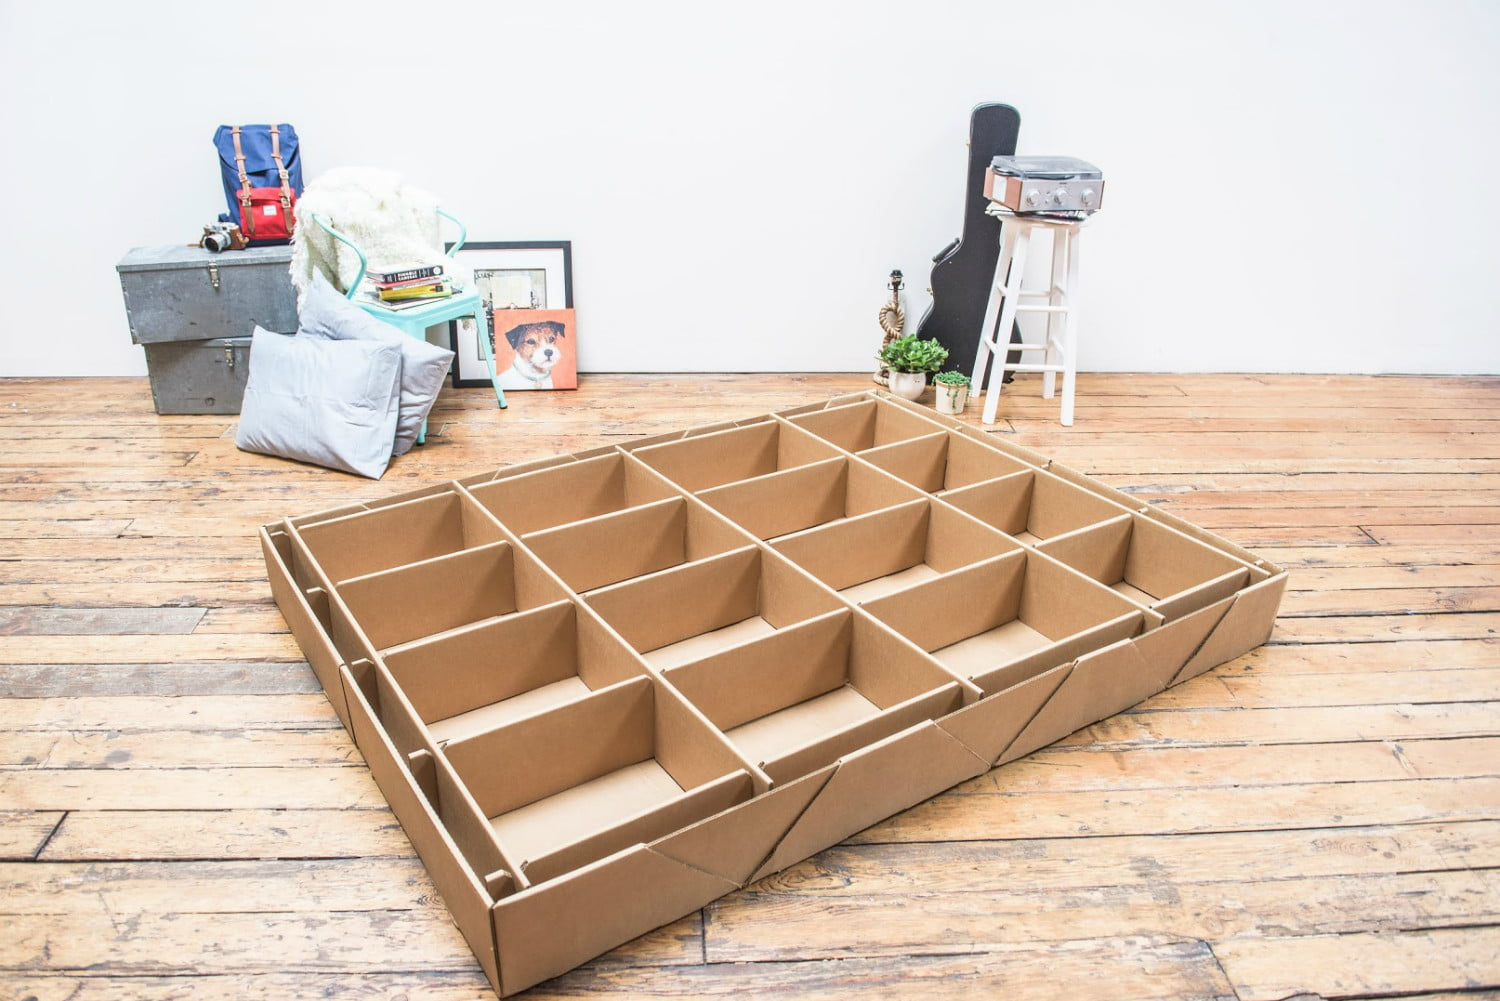 layla launches its mattress delivery kickstarter carboard boxspring